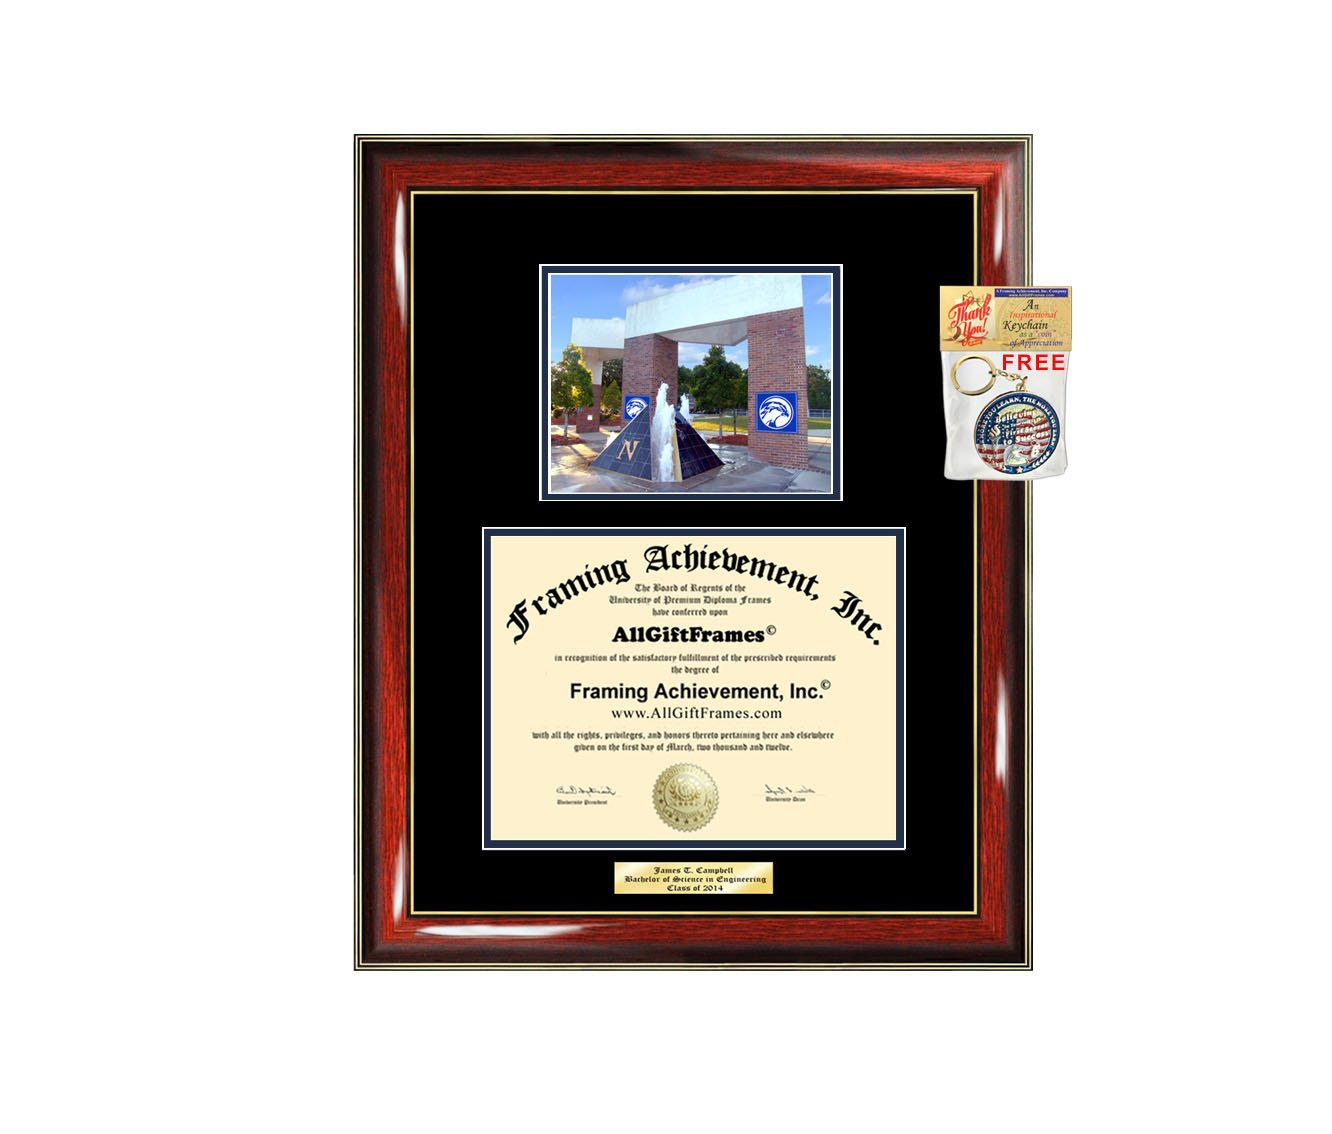 Diploma Frame University of North Florida UNF Graduation Gift Idea Engraved Picture Frames Engraving Degree Graduate Bachelor Masters MBA PHD Doctorate School